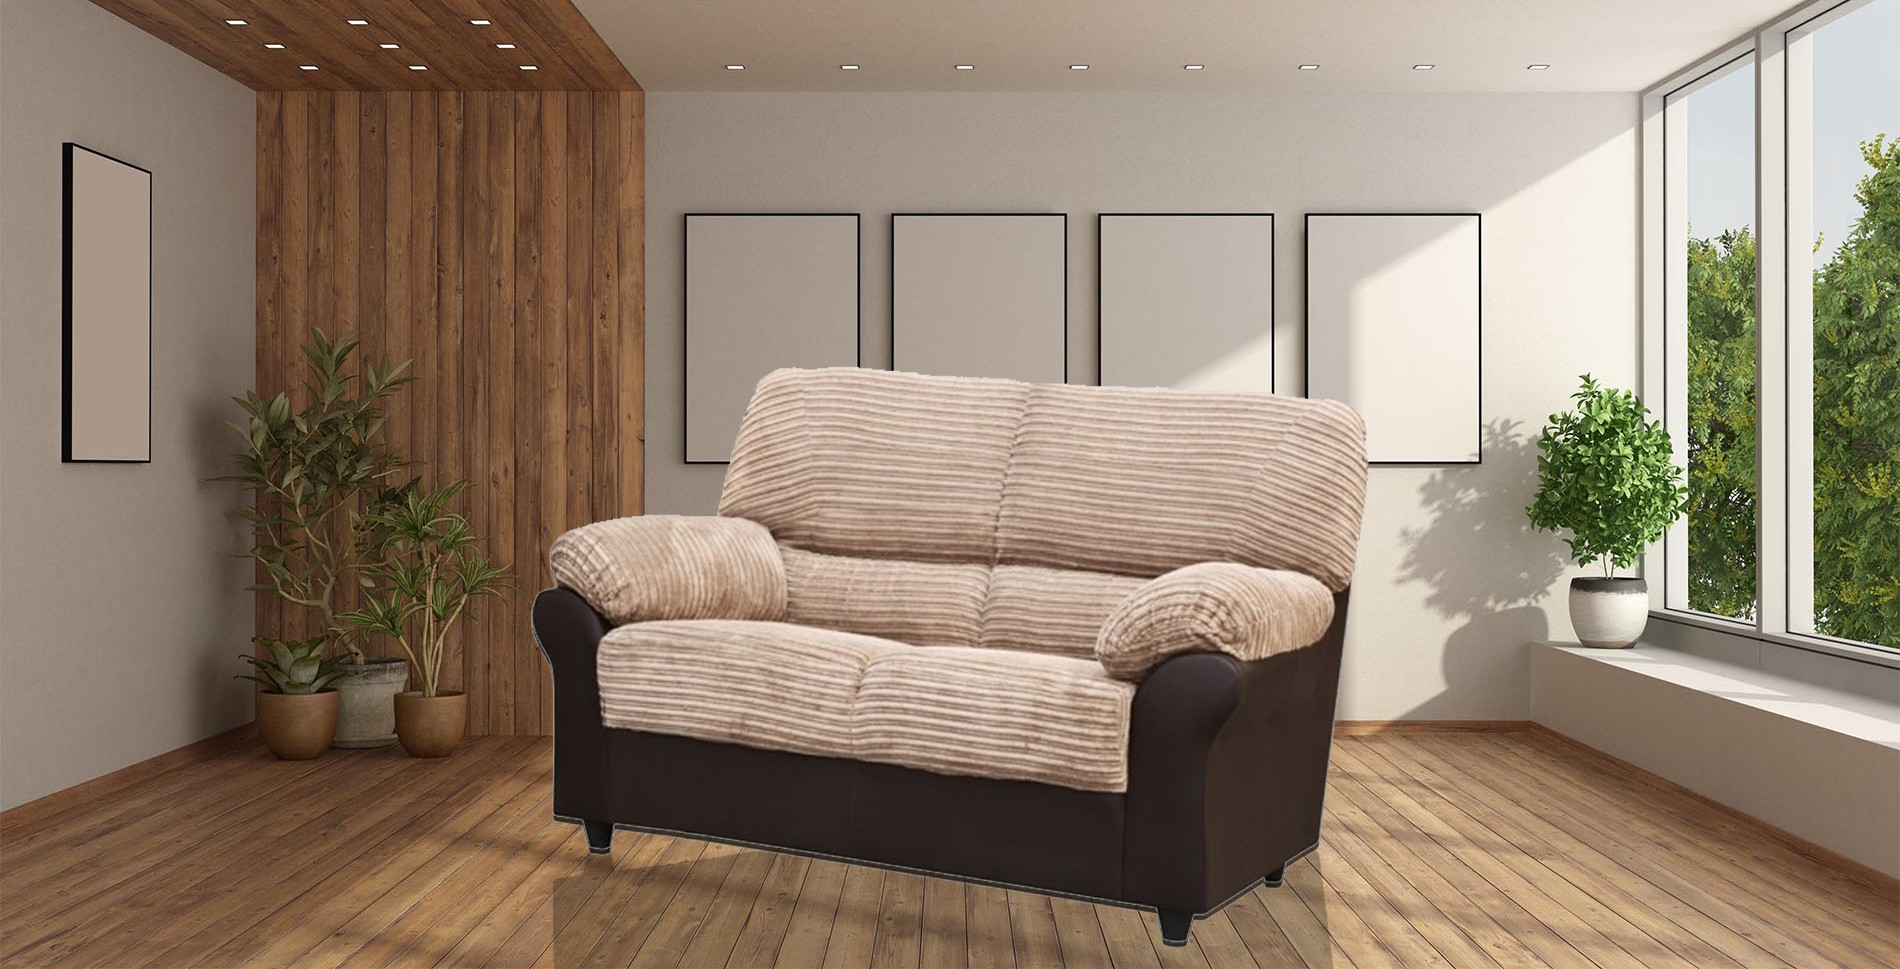 Carrick 2 Seater Brown-Beige